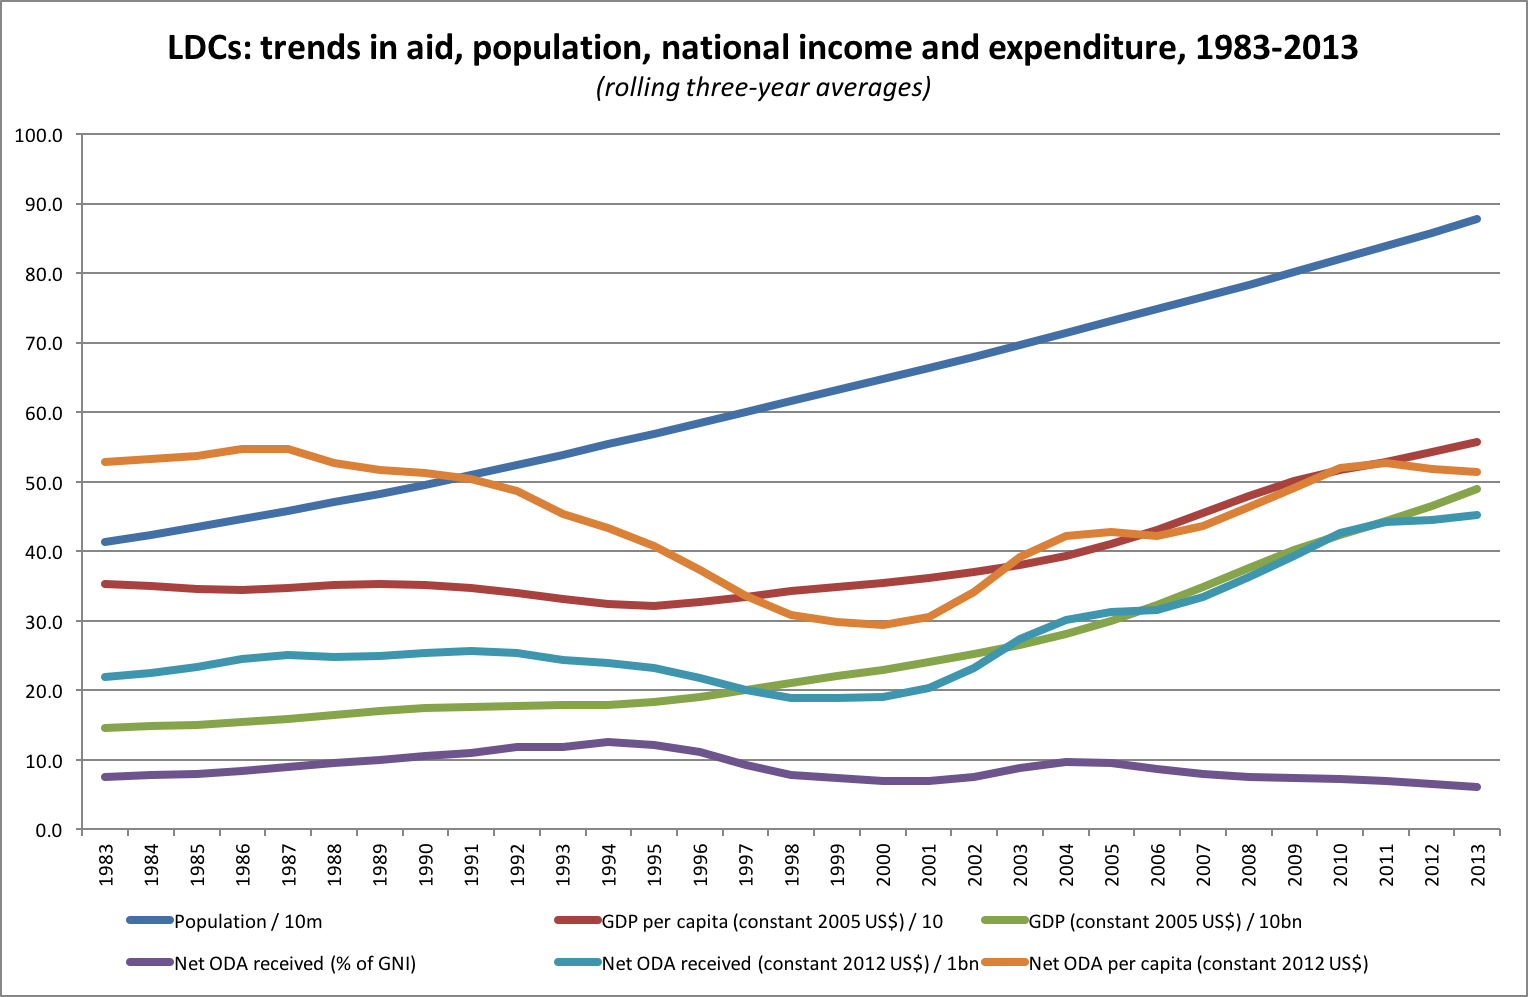 LDCs: trends in aid, population, national income and expenditure, 1983-2013